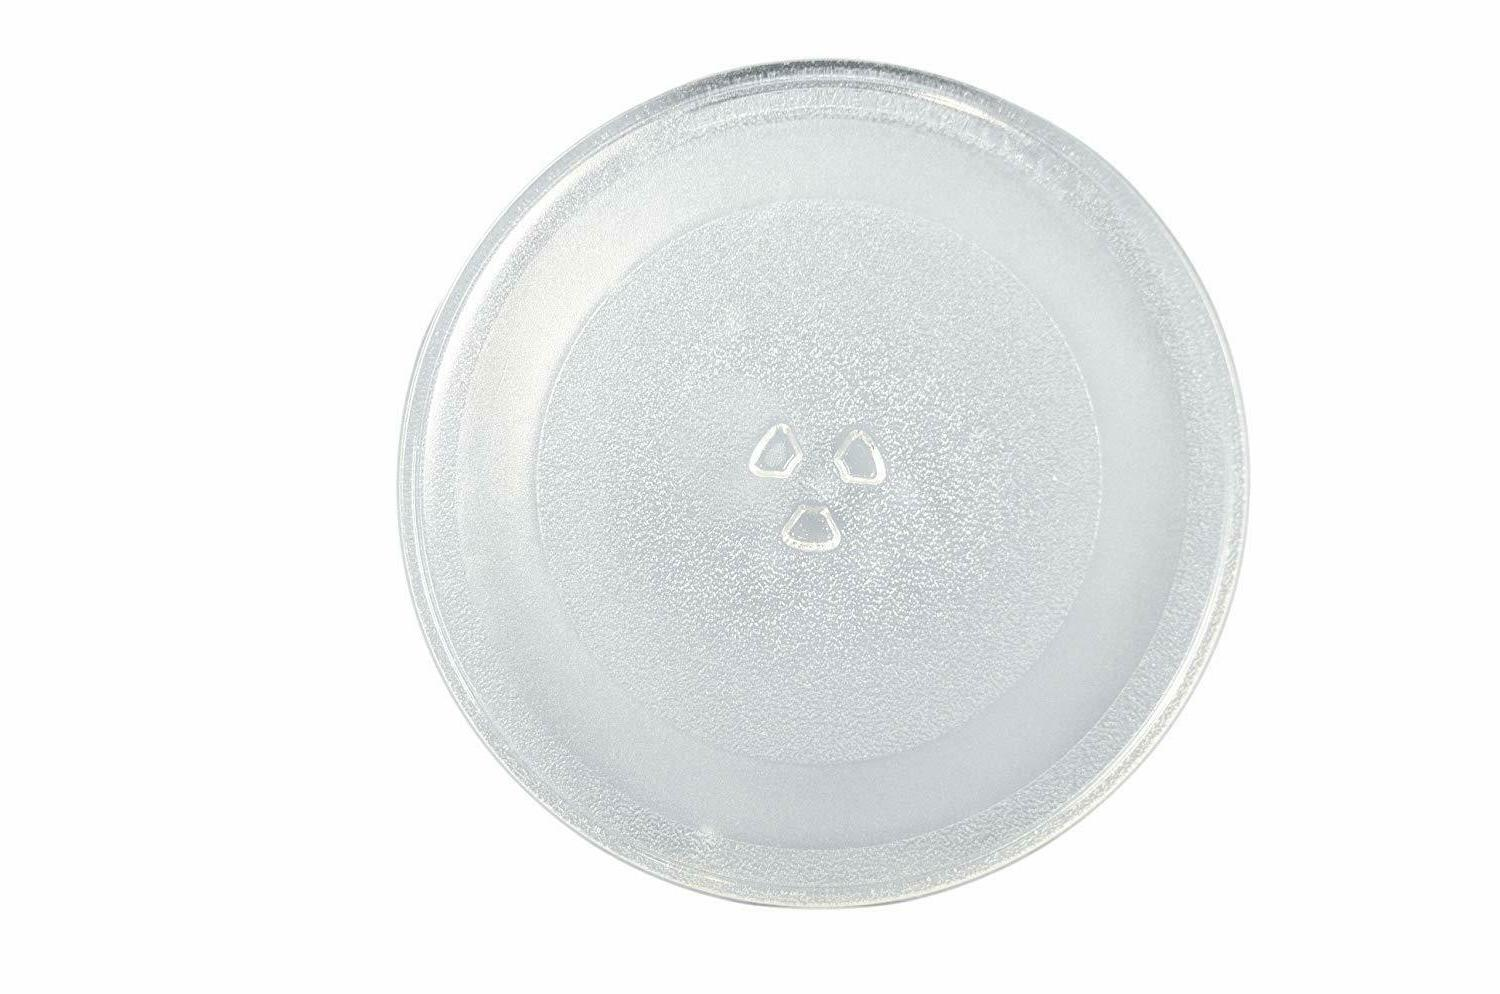 3390w1g014a microwave oven glass turntable